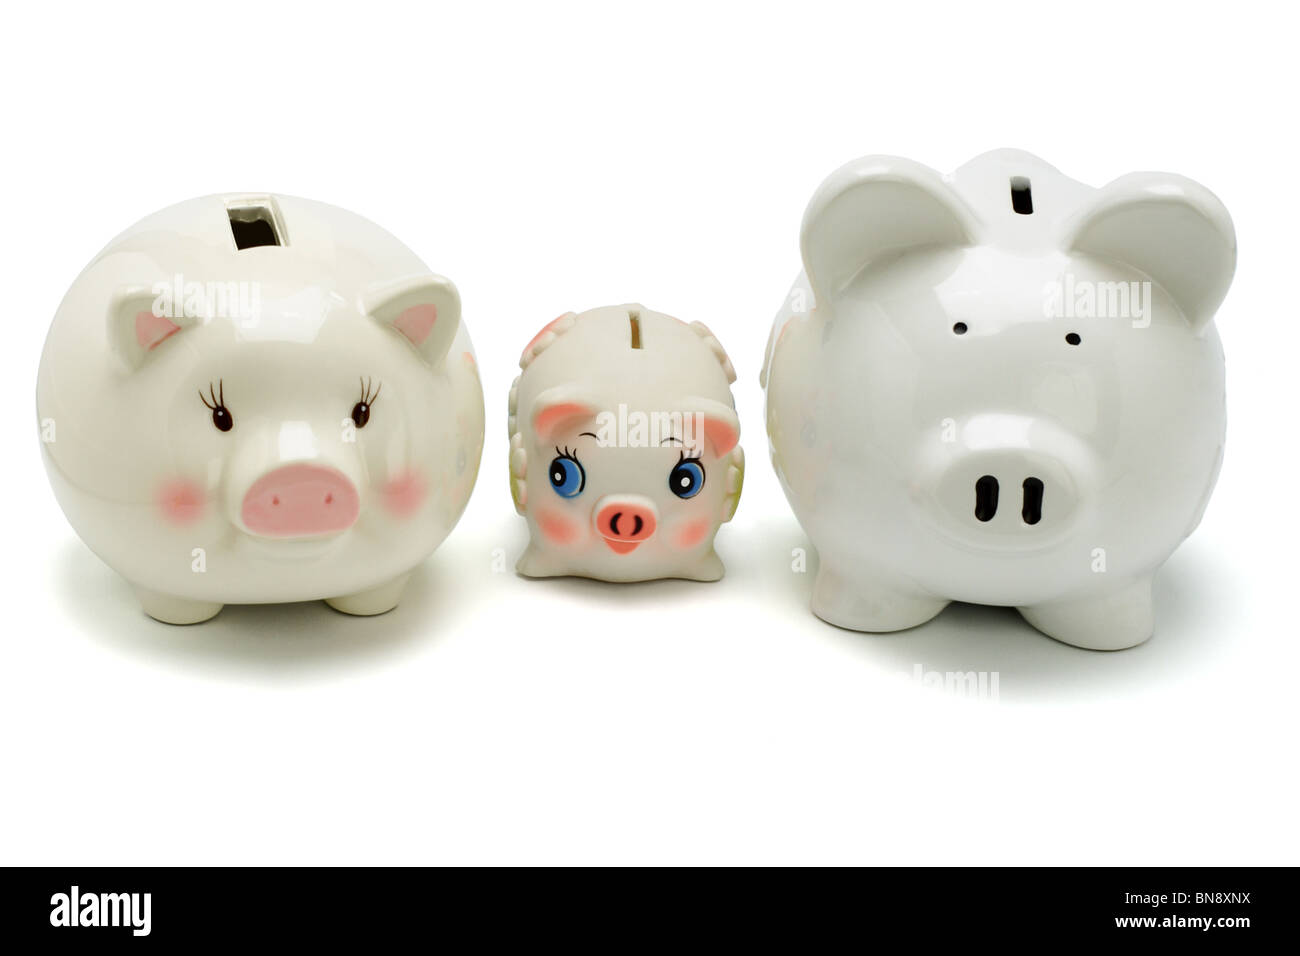 Family of piggy banks on white background - Stock Image